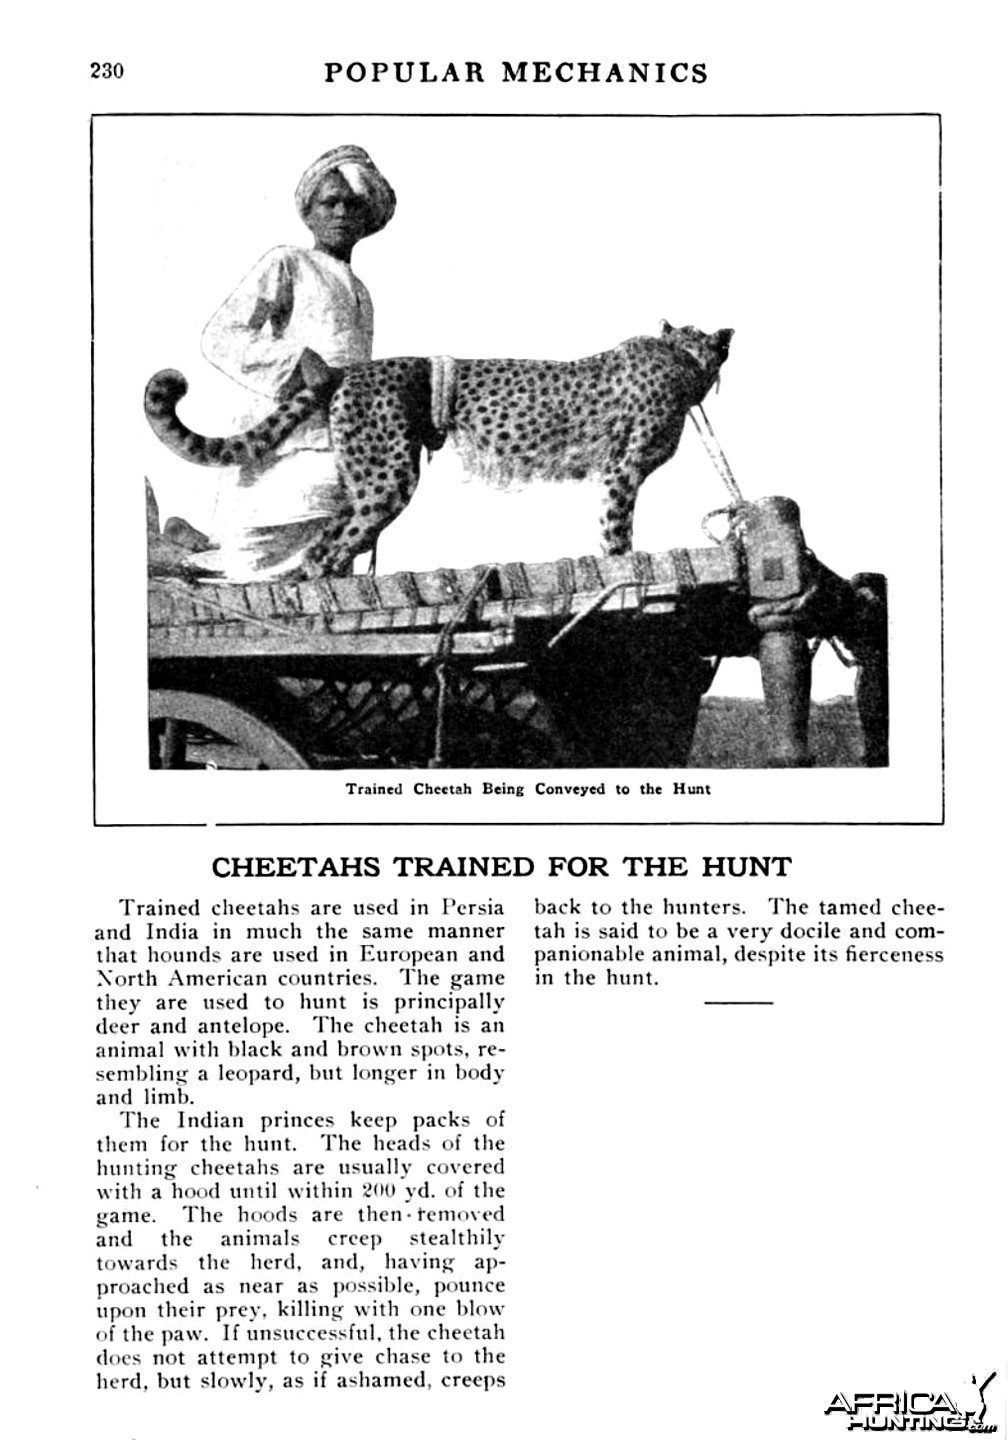 Cheetah Trained for the Hunt